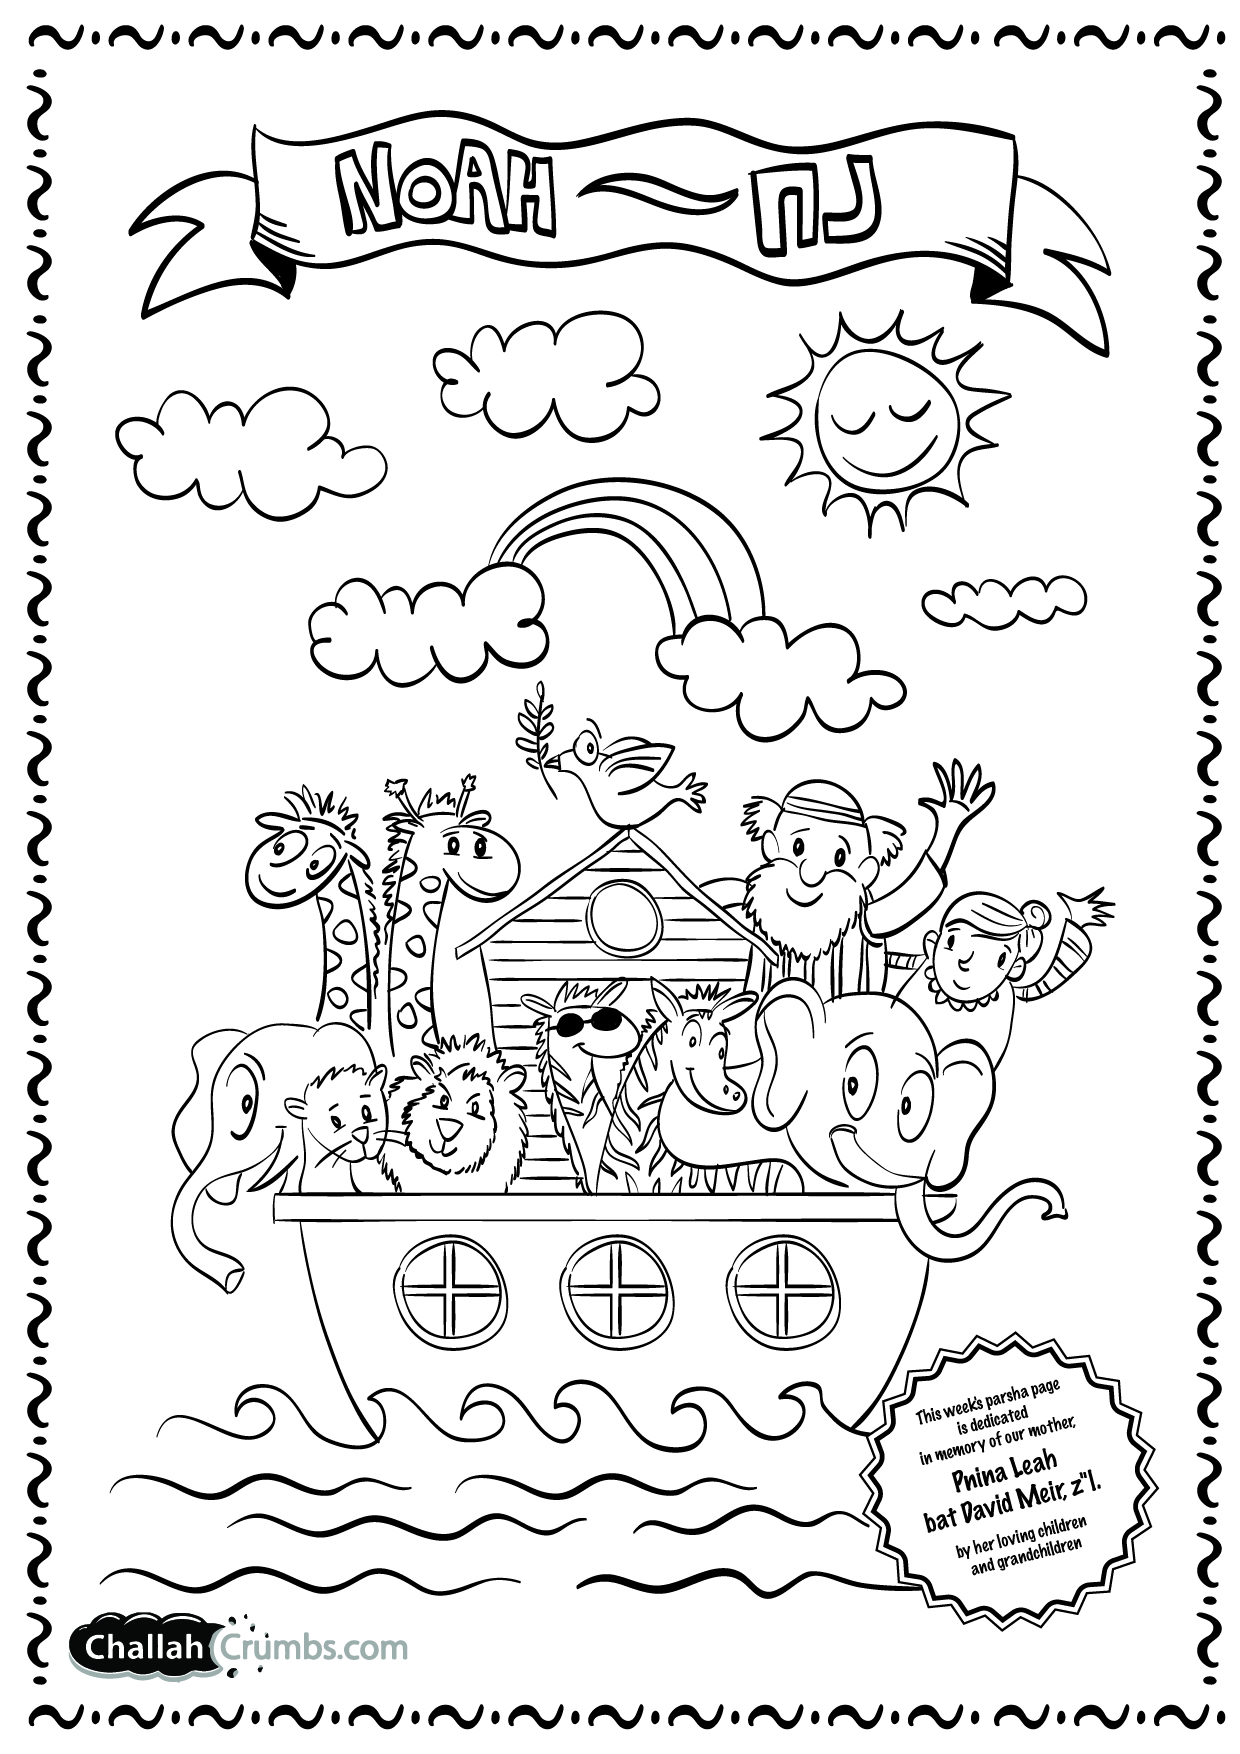 Vayetze clipart clip art royalty free stock Parshat Noach Coloring Page (click on picture to print ... clip art royalty free stock